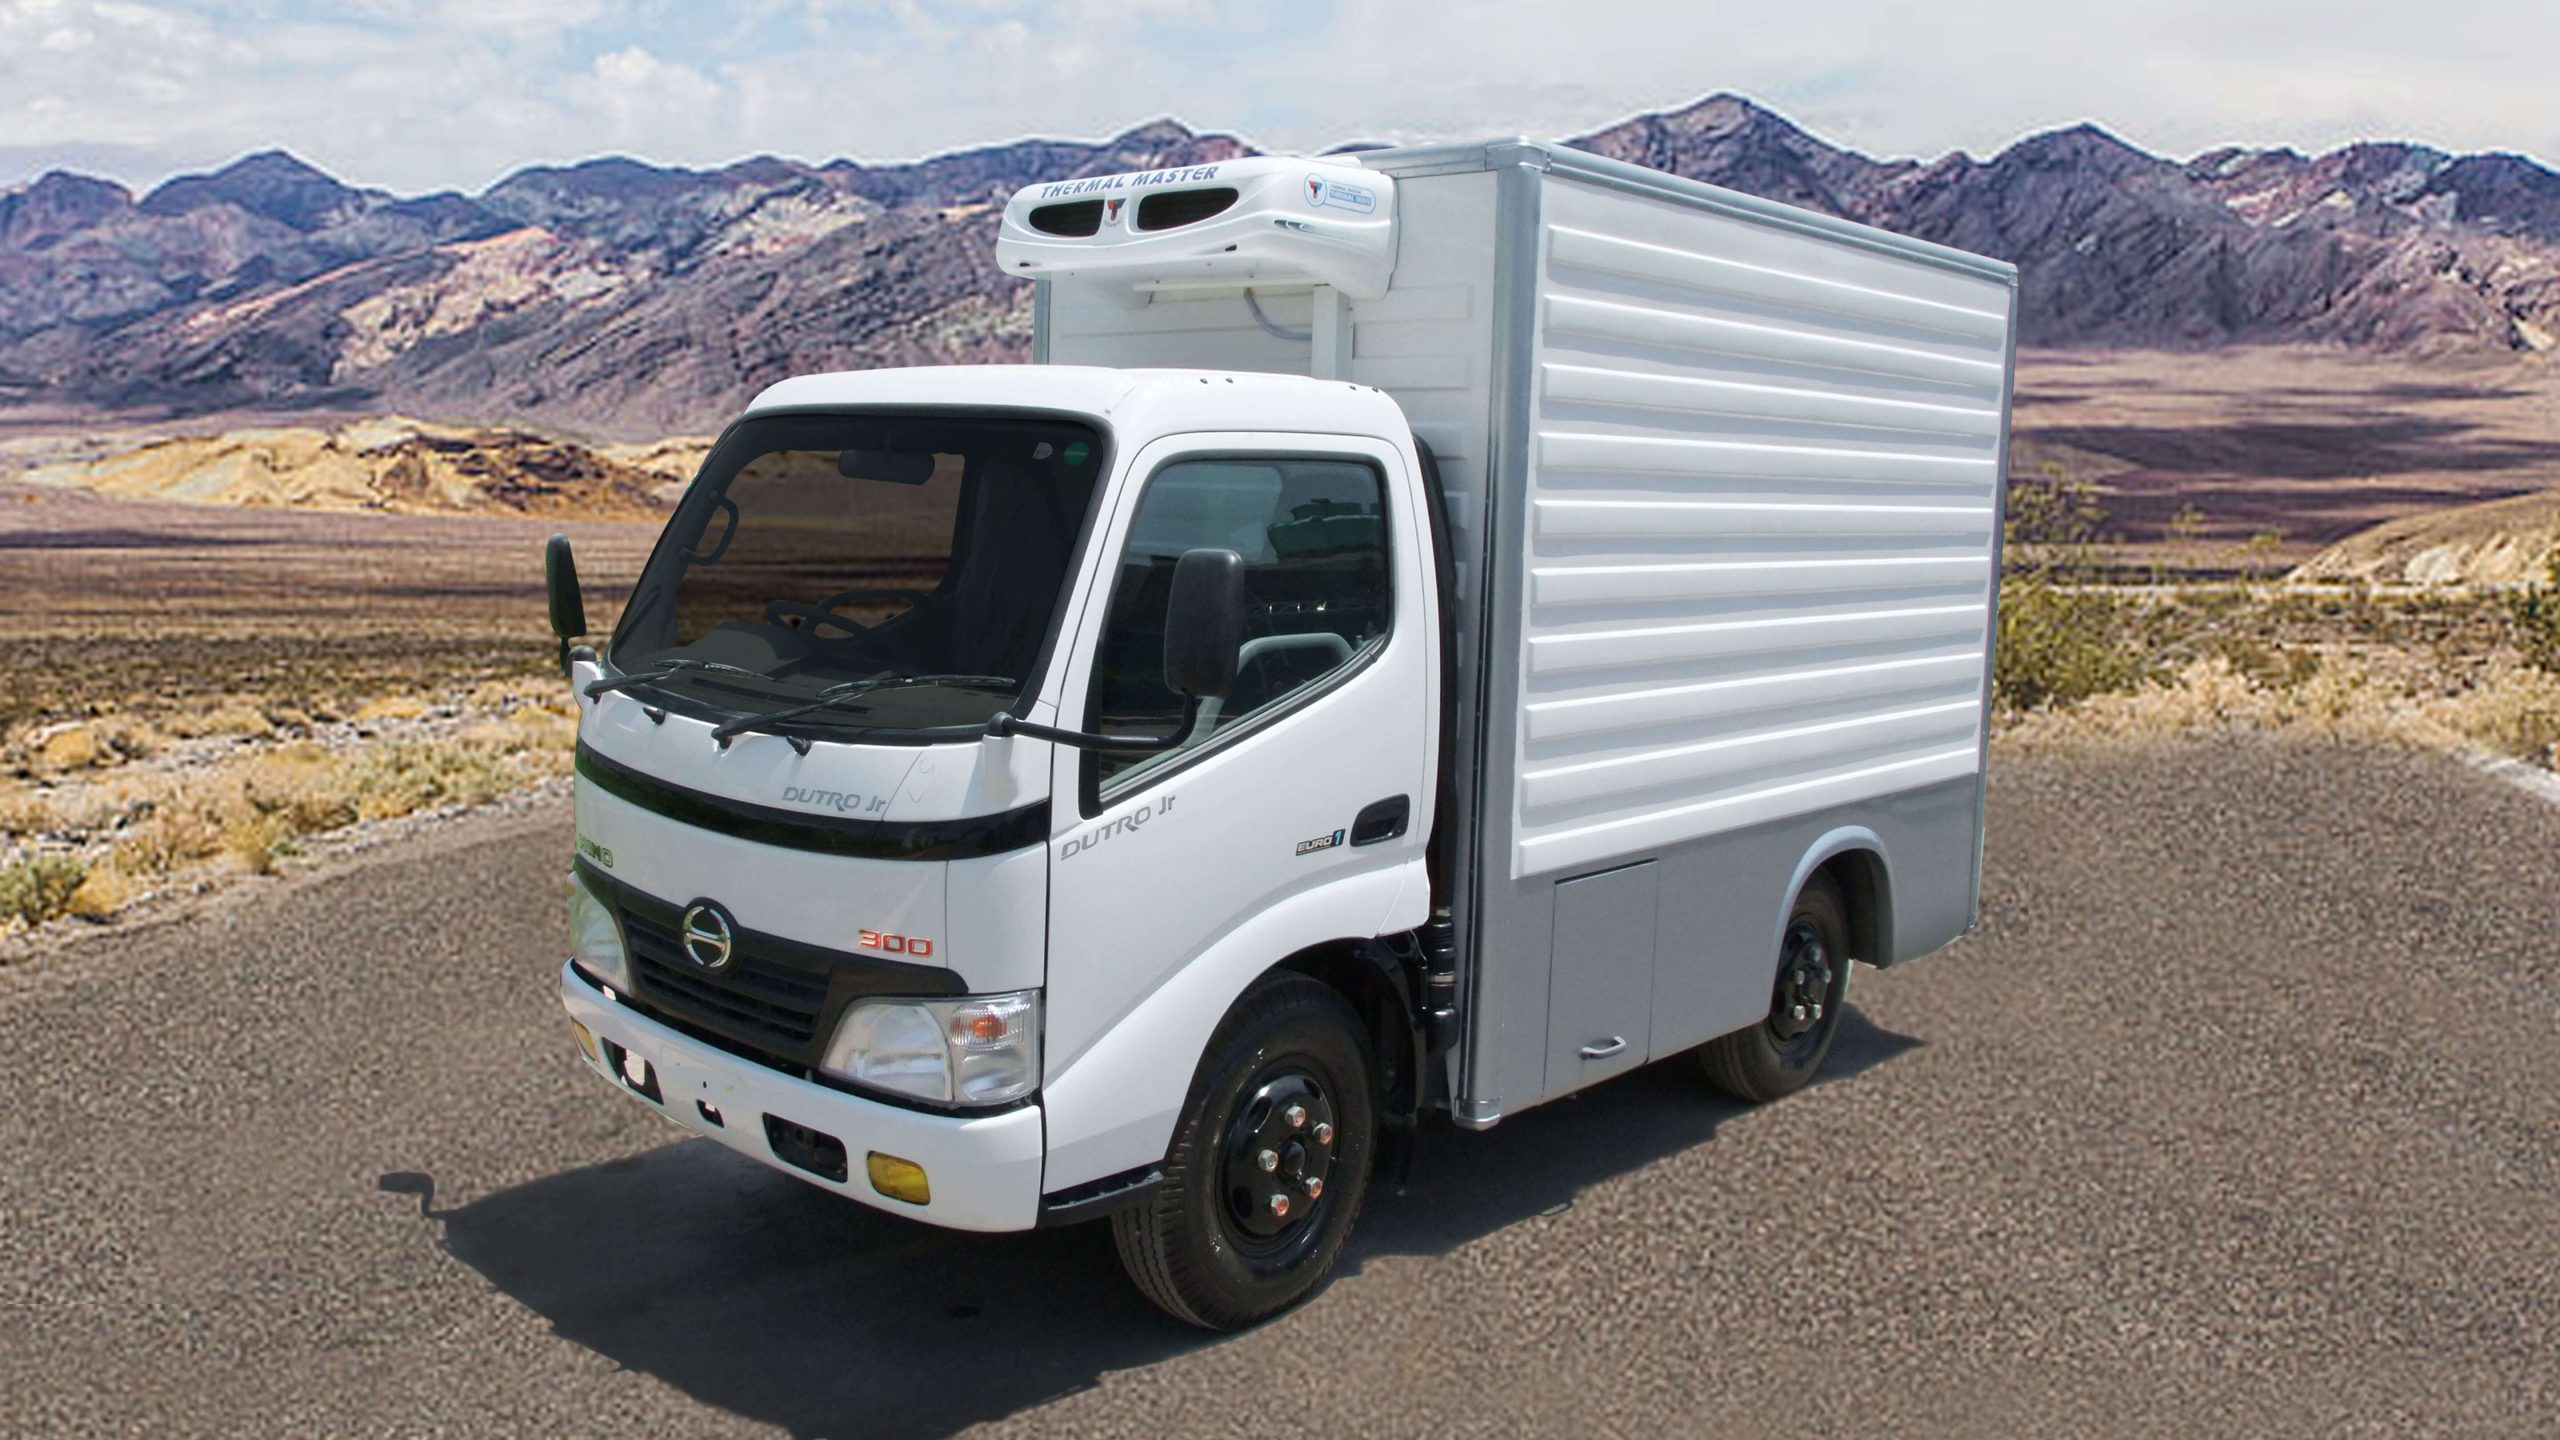 VACCINE CARRIER ON HINO TRUCK